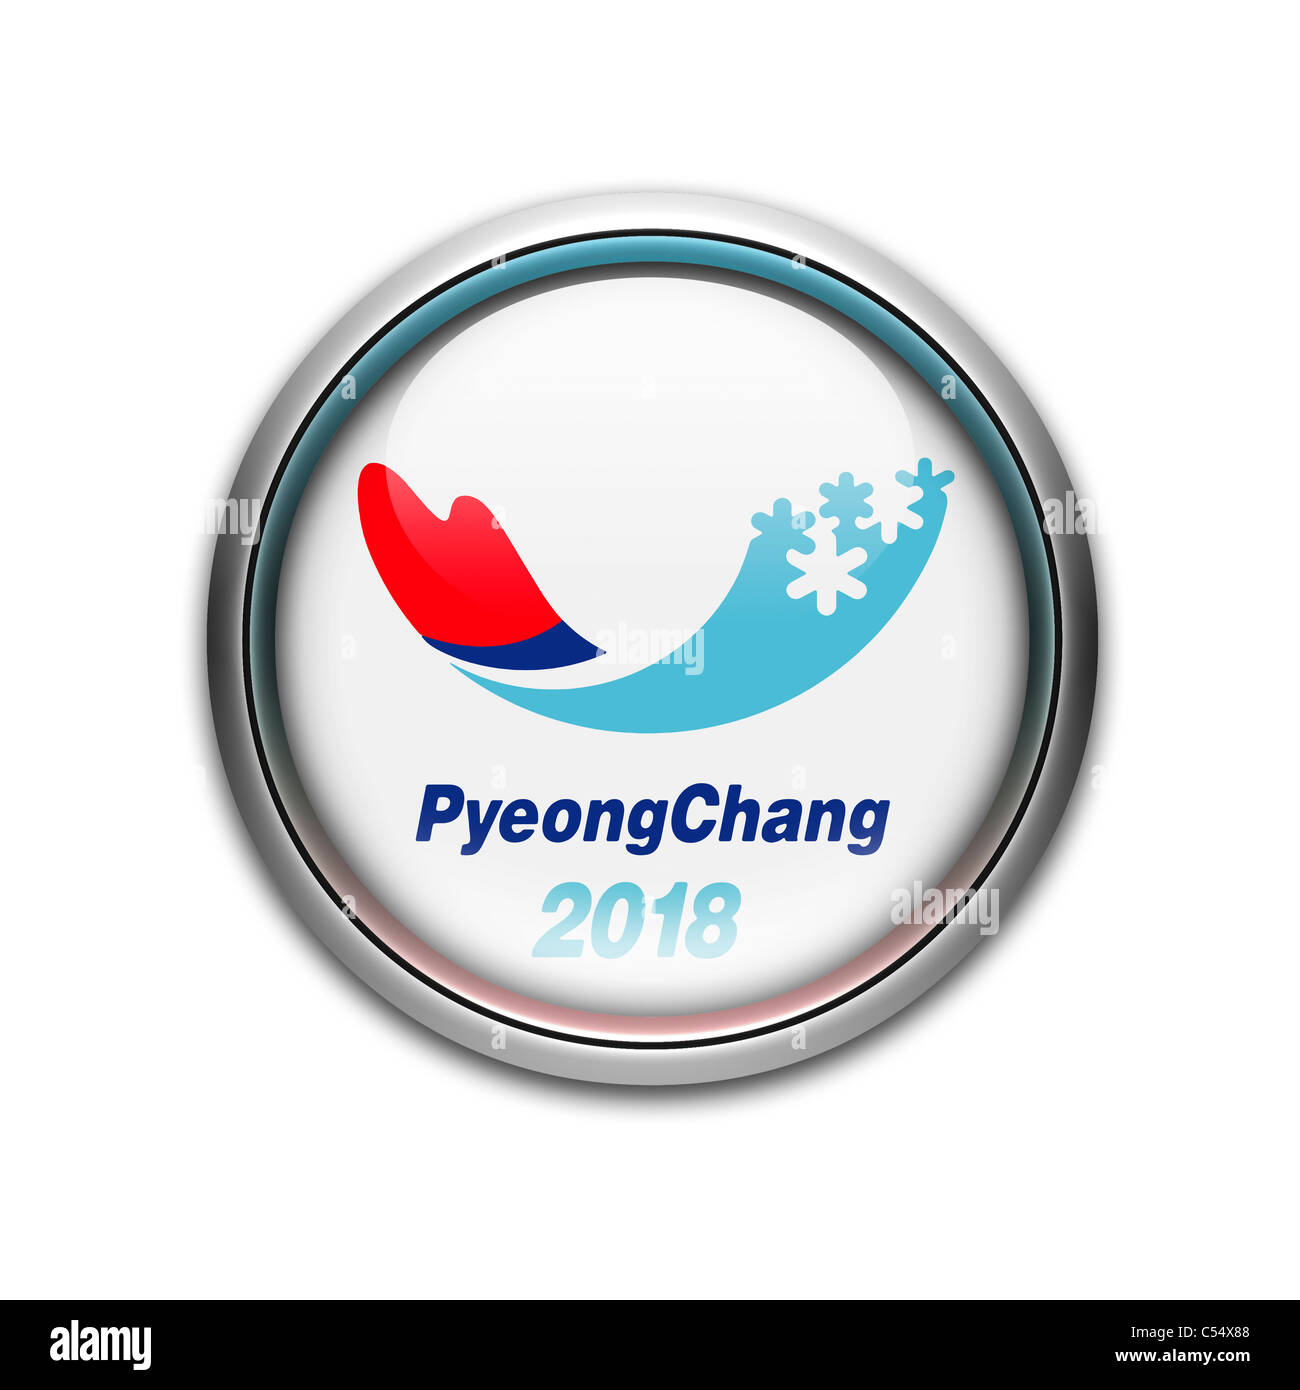 Pyeongchang 2018 winter olympic games logo flag symbol icon emblem pyeongchang 2018 winter olympic games logo flag symbol icon emblem biocorpaavc Images